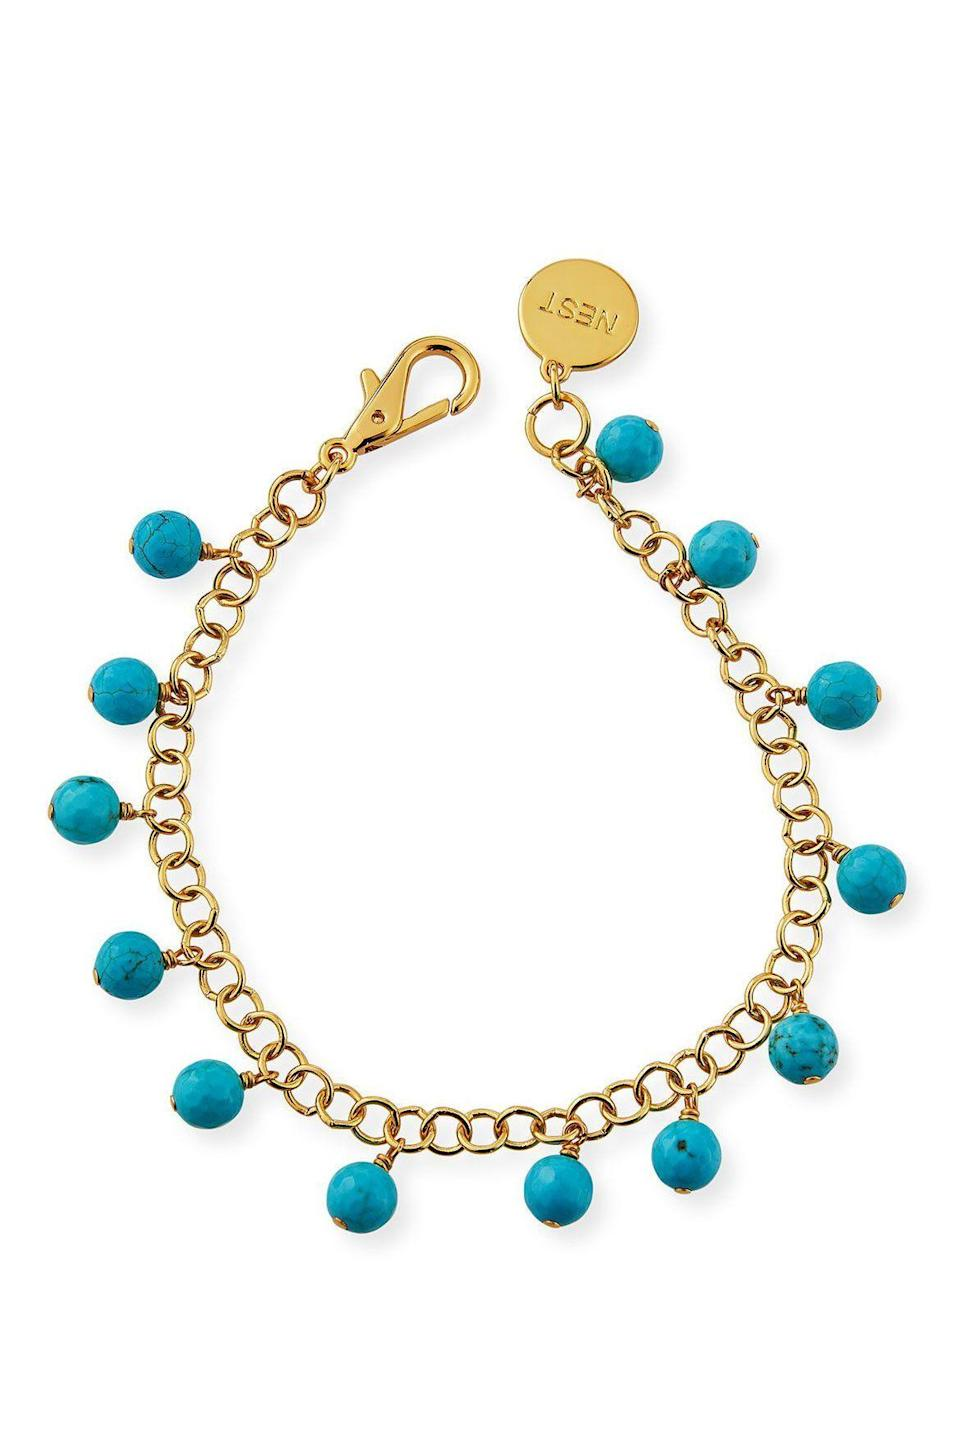 """<p><strong>NEST Jewelry</strong></p><p>Neiman Marcus</p><p><strong>$95.00</strong></p><p><a href=""""https://go.redirectingat.com?id=74968X1596630&url=https%3A%2F%2Fwww.neimanmarcus.com%2Fp%2Fnest-jewelry-turquoise-charm-anklet-prod220090369&sref=https%3A%2F%2Fwww.marieclaire.com%2Ffashion%2Fg35714949%2Fjewelry-trends-fall-2021%2F"""" rel=""""nofollow noopener"""" target=""""_blank"""" data-ylk=""""slk:SHOP IT"""" class=""""link rapid-noclick-resp"""">SHOP IT</a></p><p>An anklet is a perfect way to showcase subtle charms. </p>"""